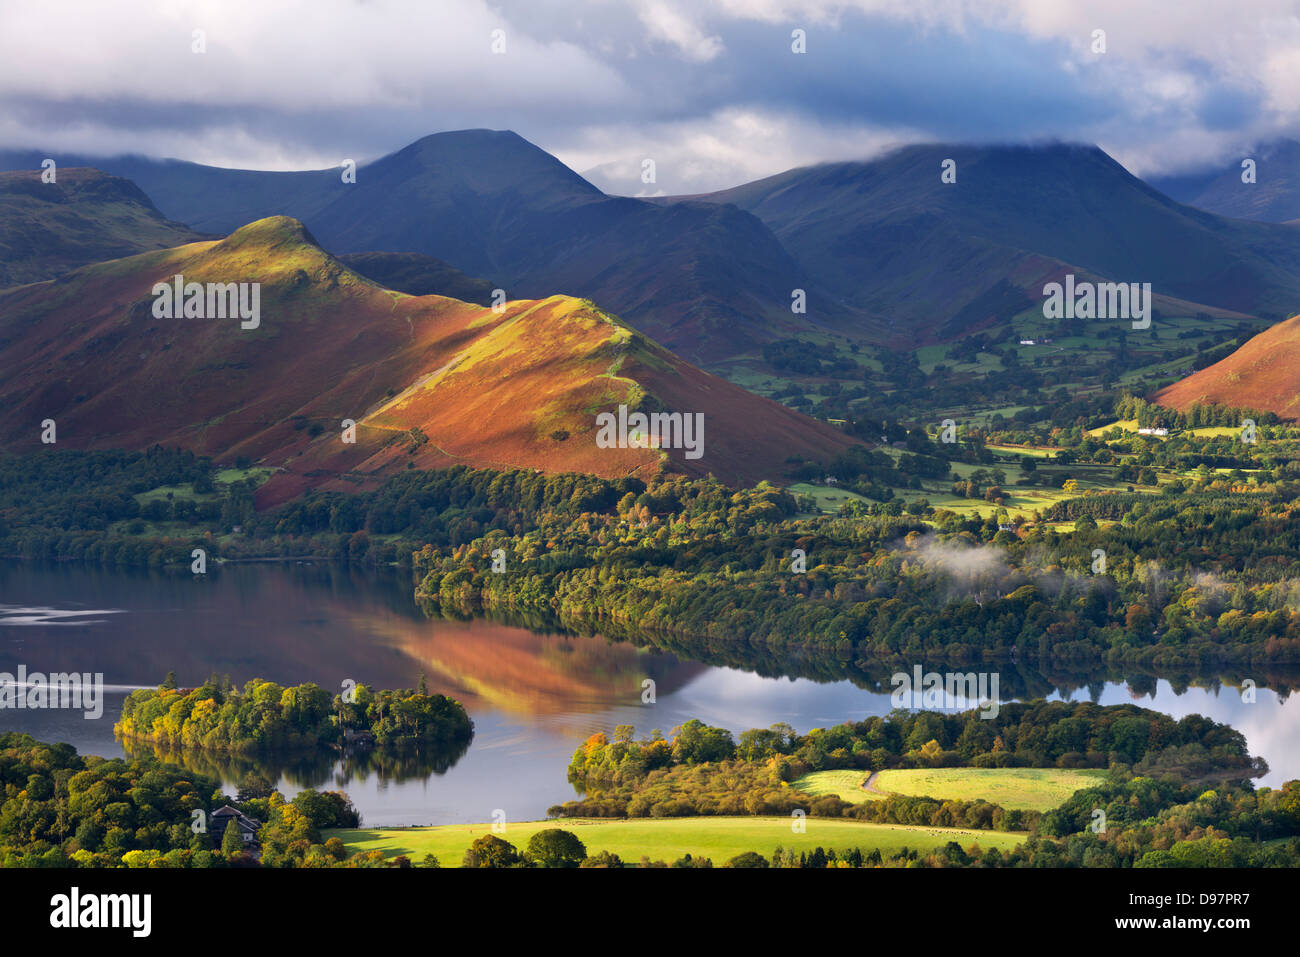 Derwent Water and Catbells mountain, Lake District, Cumbria, England. Autumn (October) 2012. - Stock Image